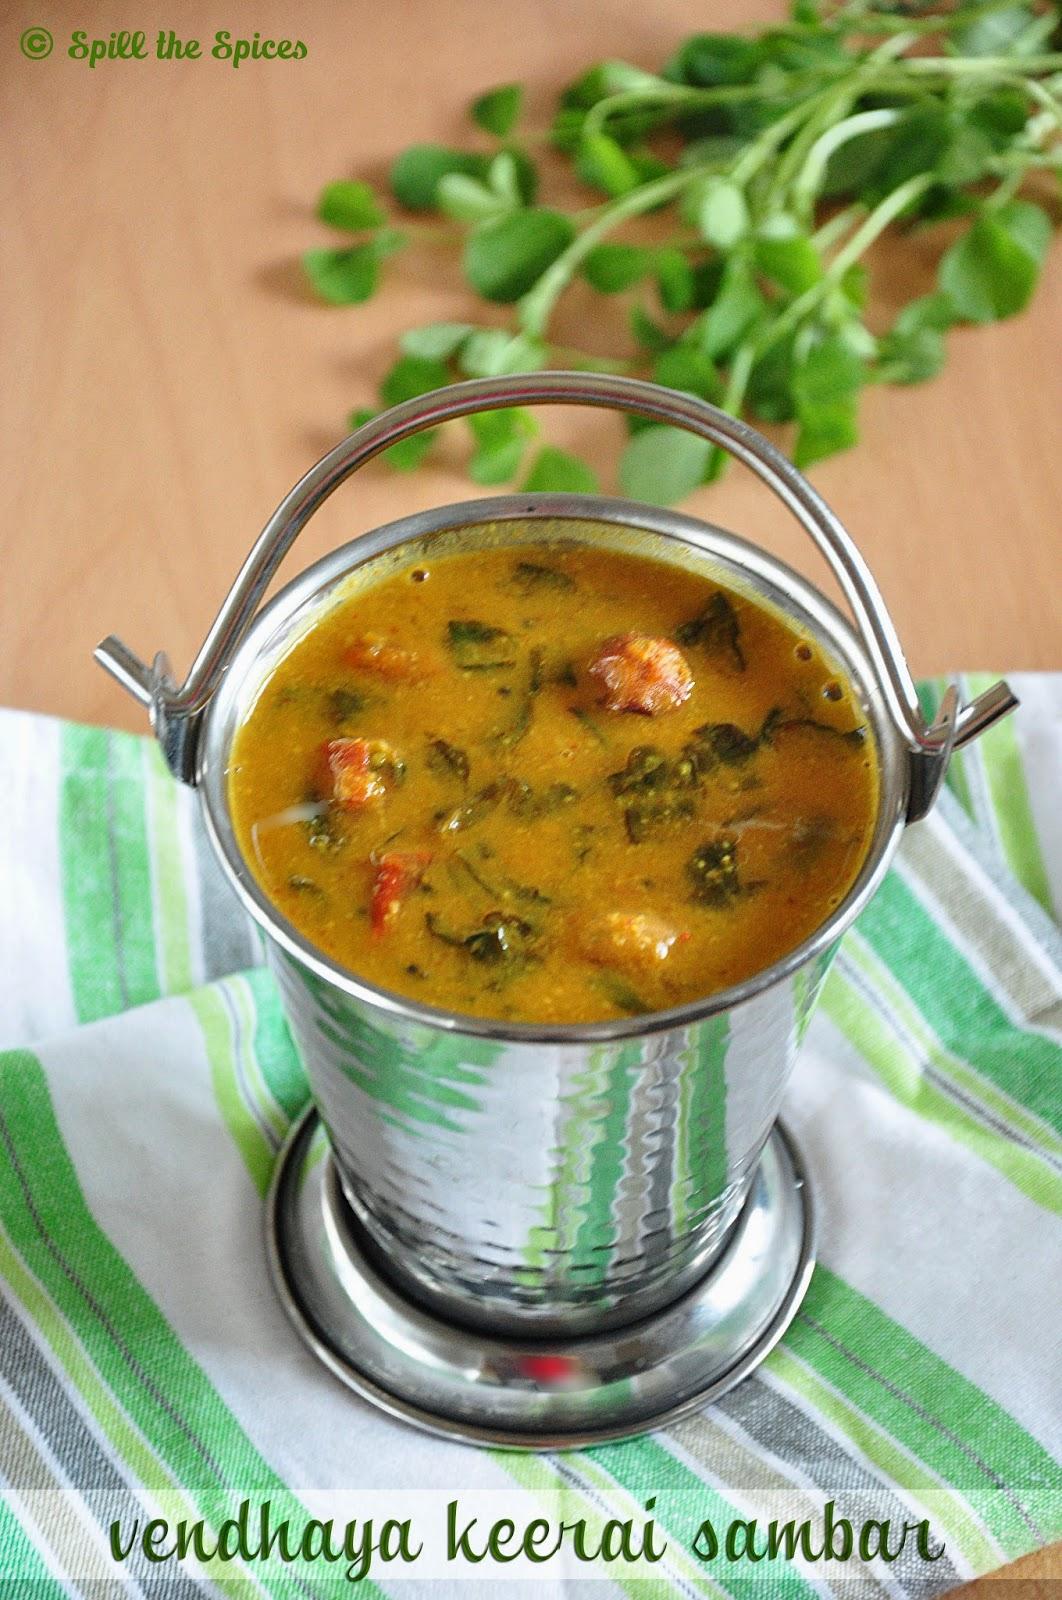 Vendhaya Keerai Sambar Methi Leaves Sambar Spill the Spices